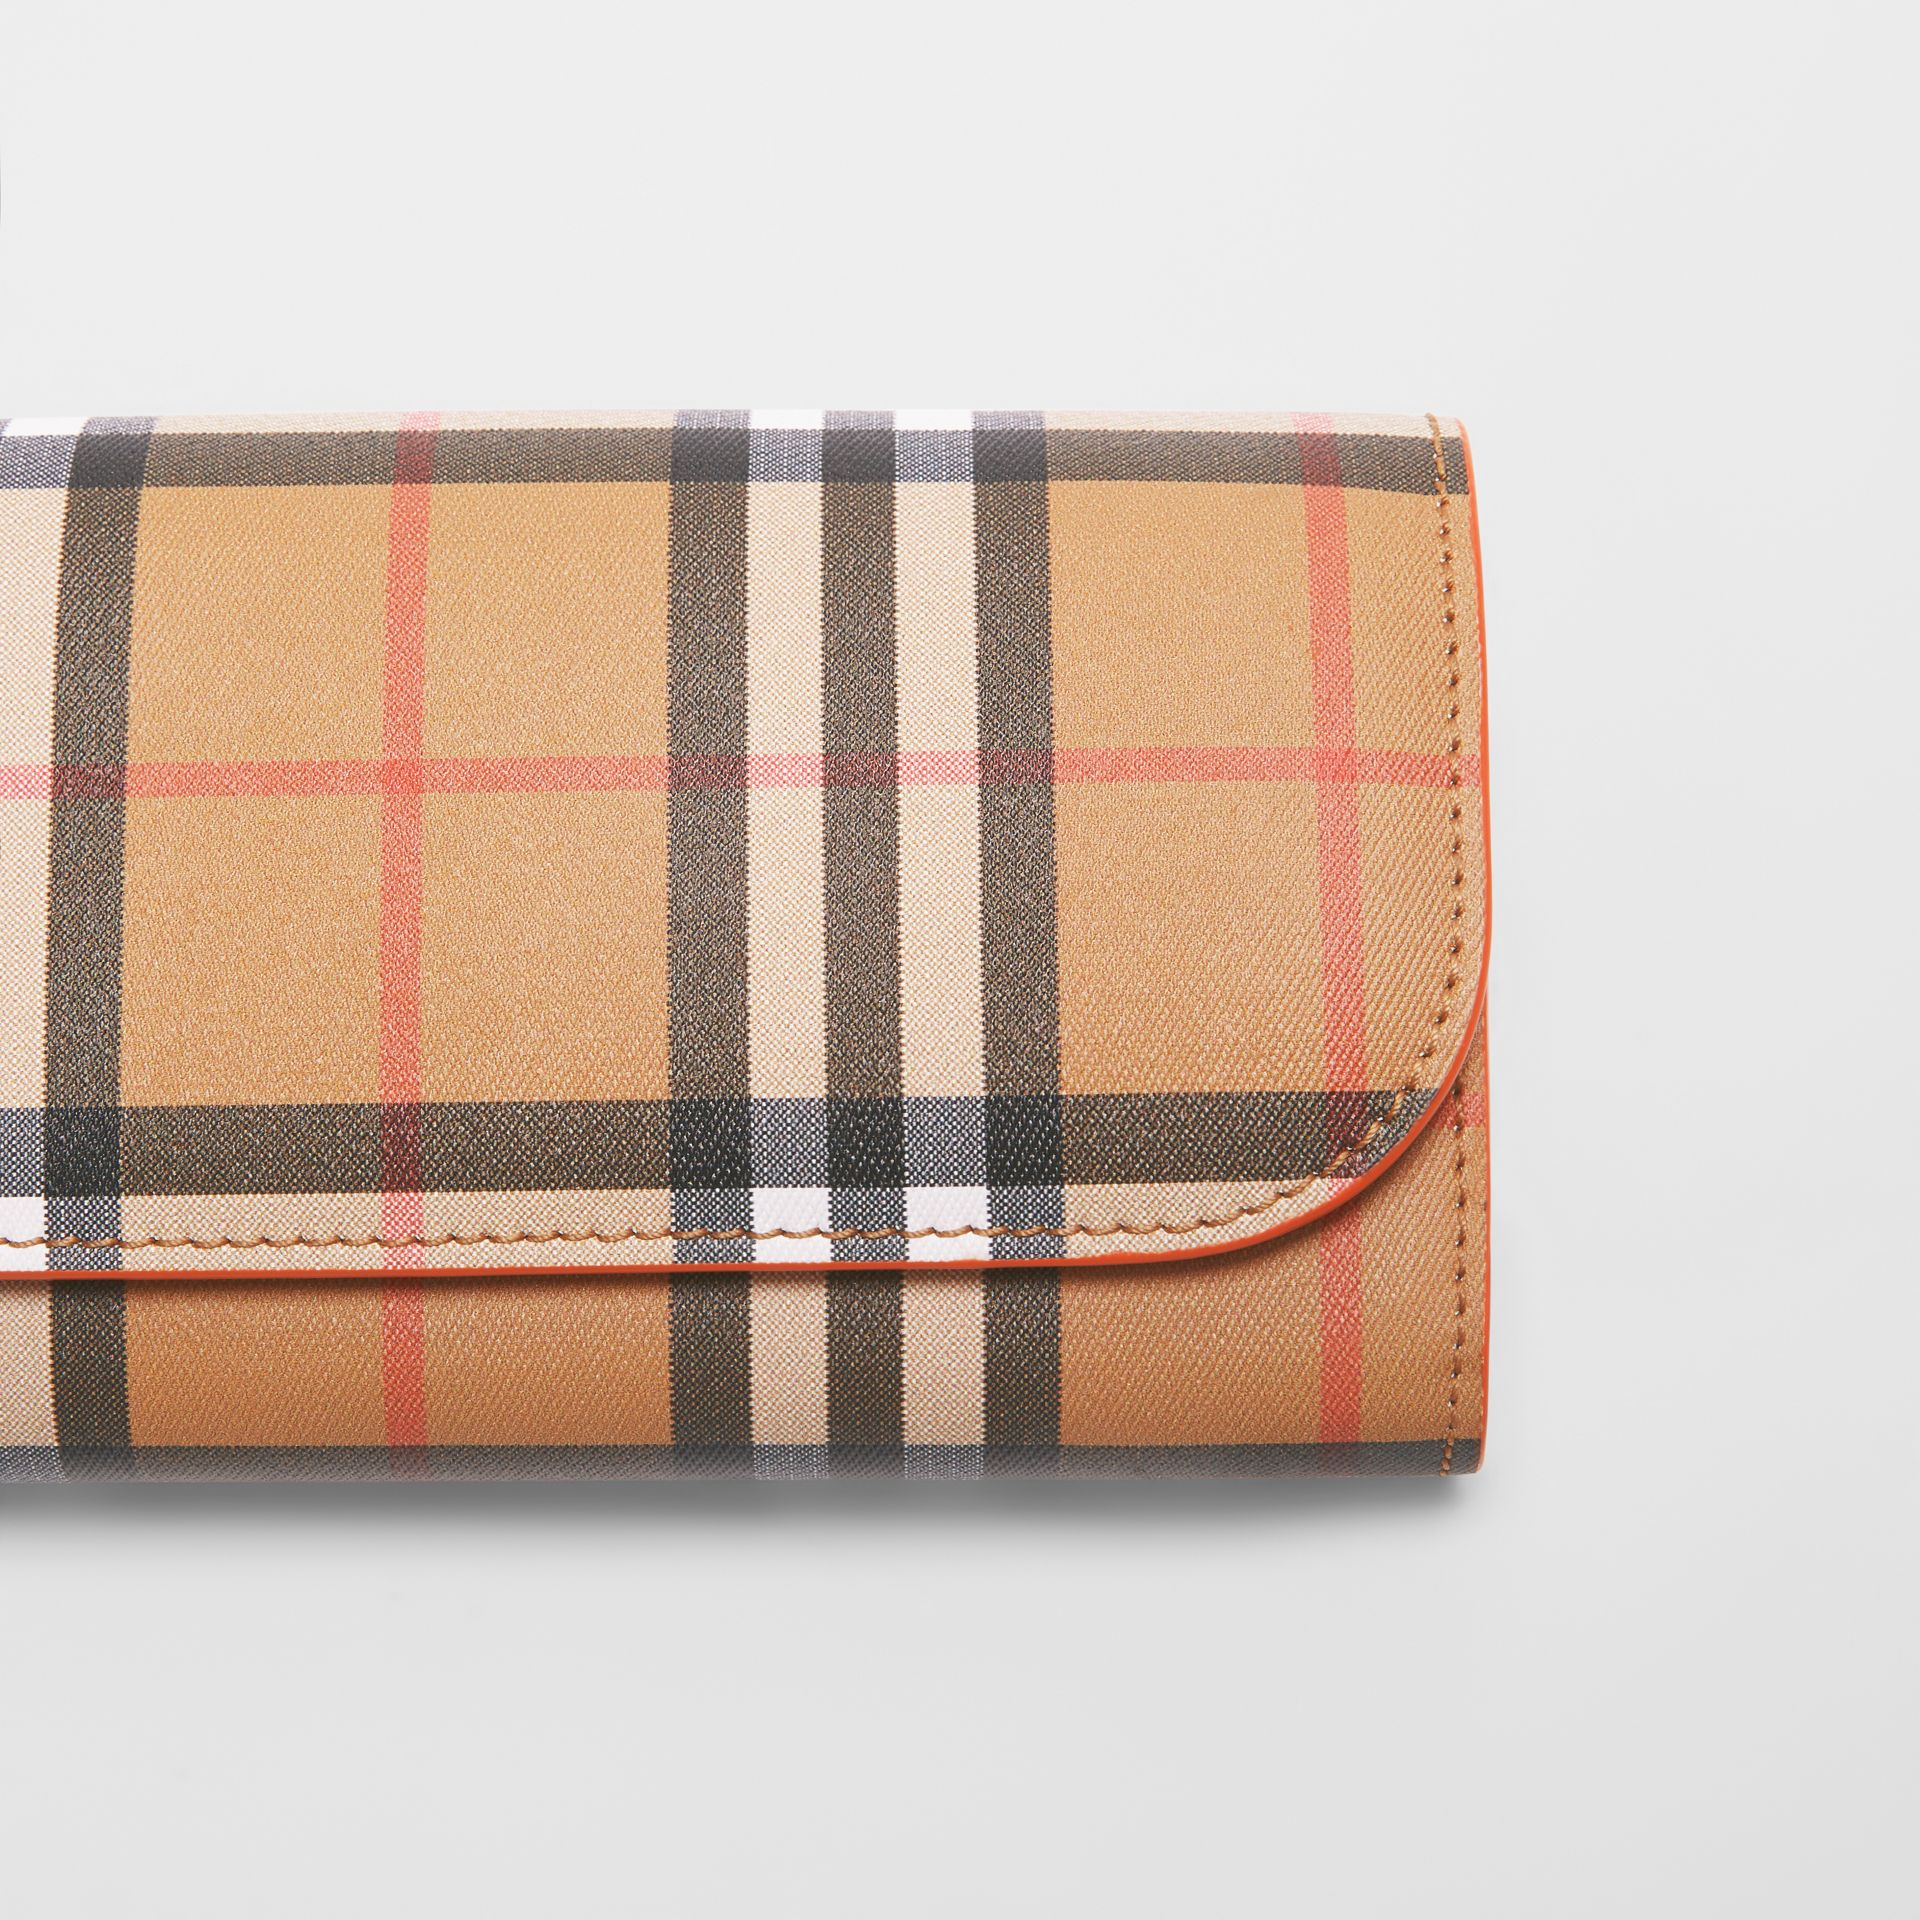 Vintage Check and Leather Continental Wallet in Clementine - Women | Burberry Australia - gallery image 1